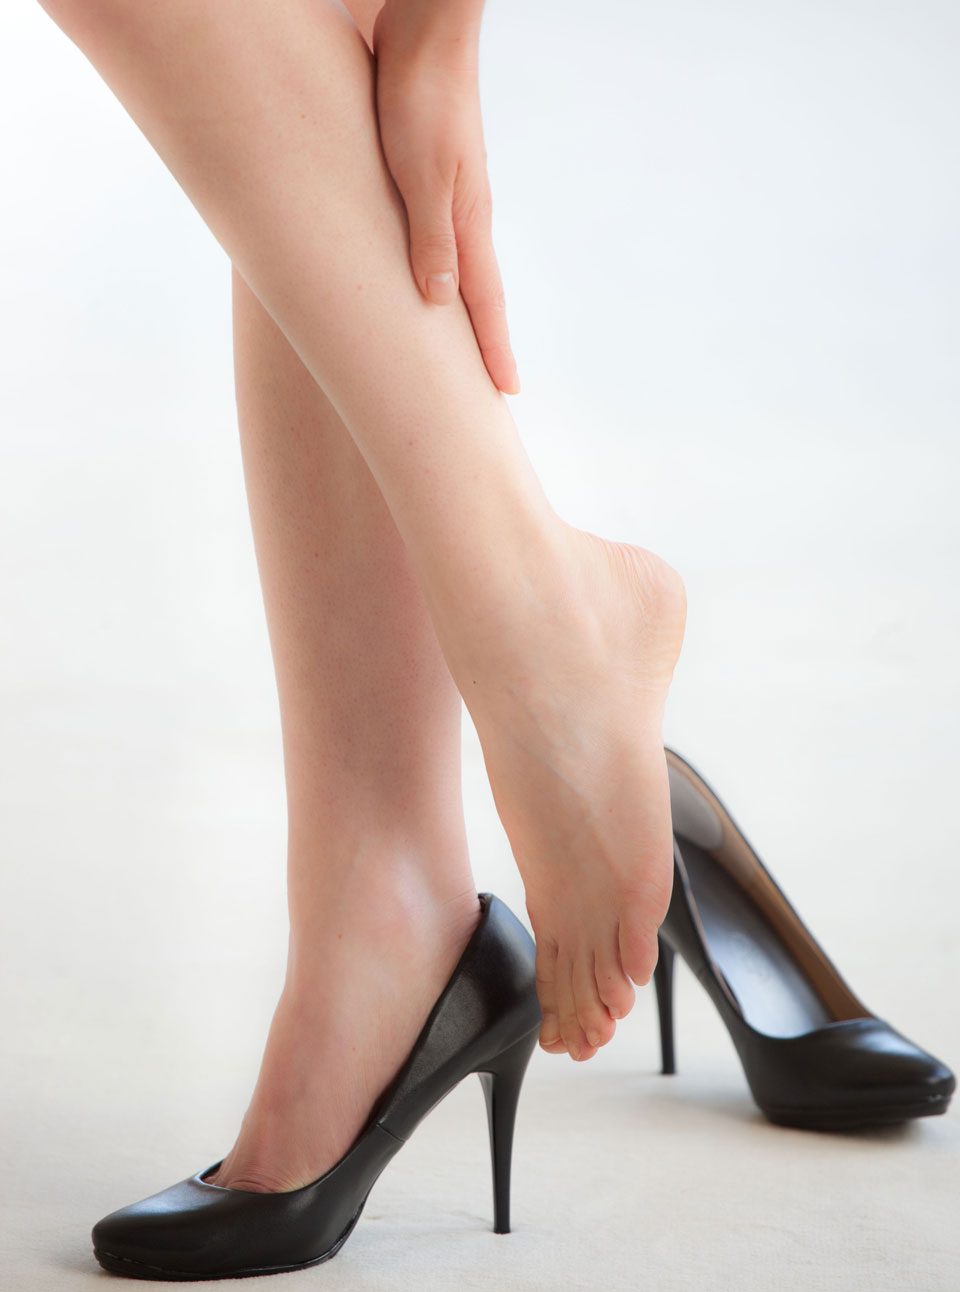 Are High Heels Causing You Foot Problems?